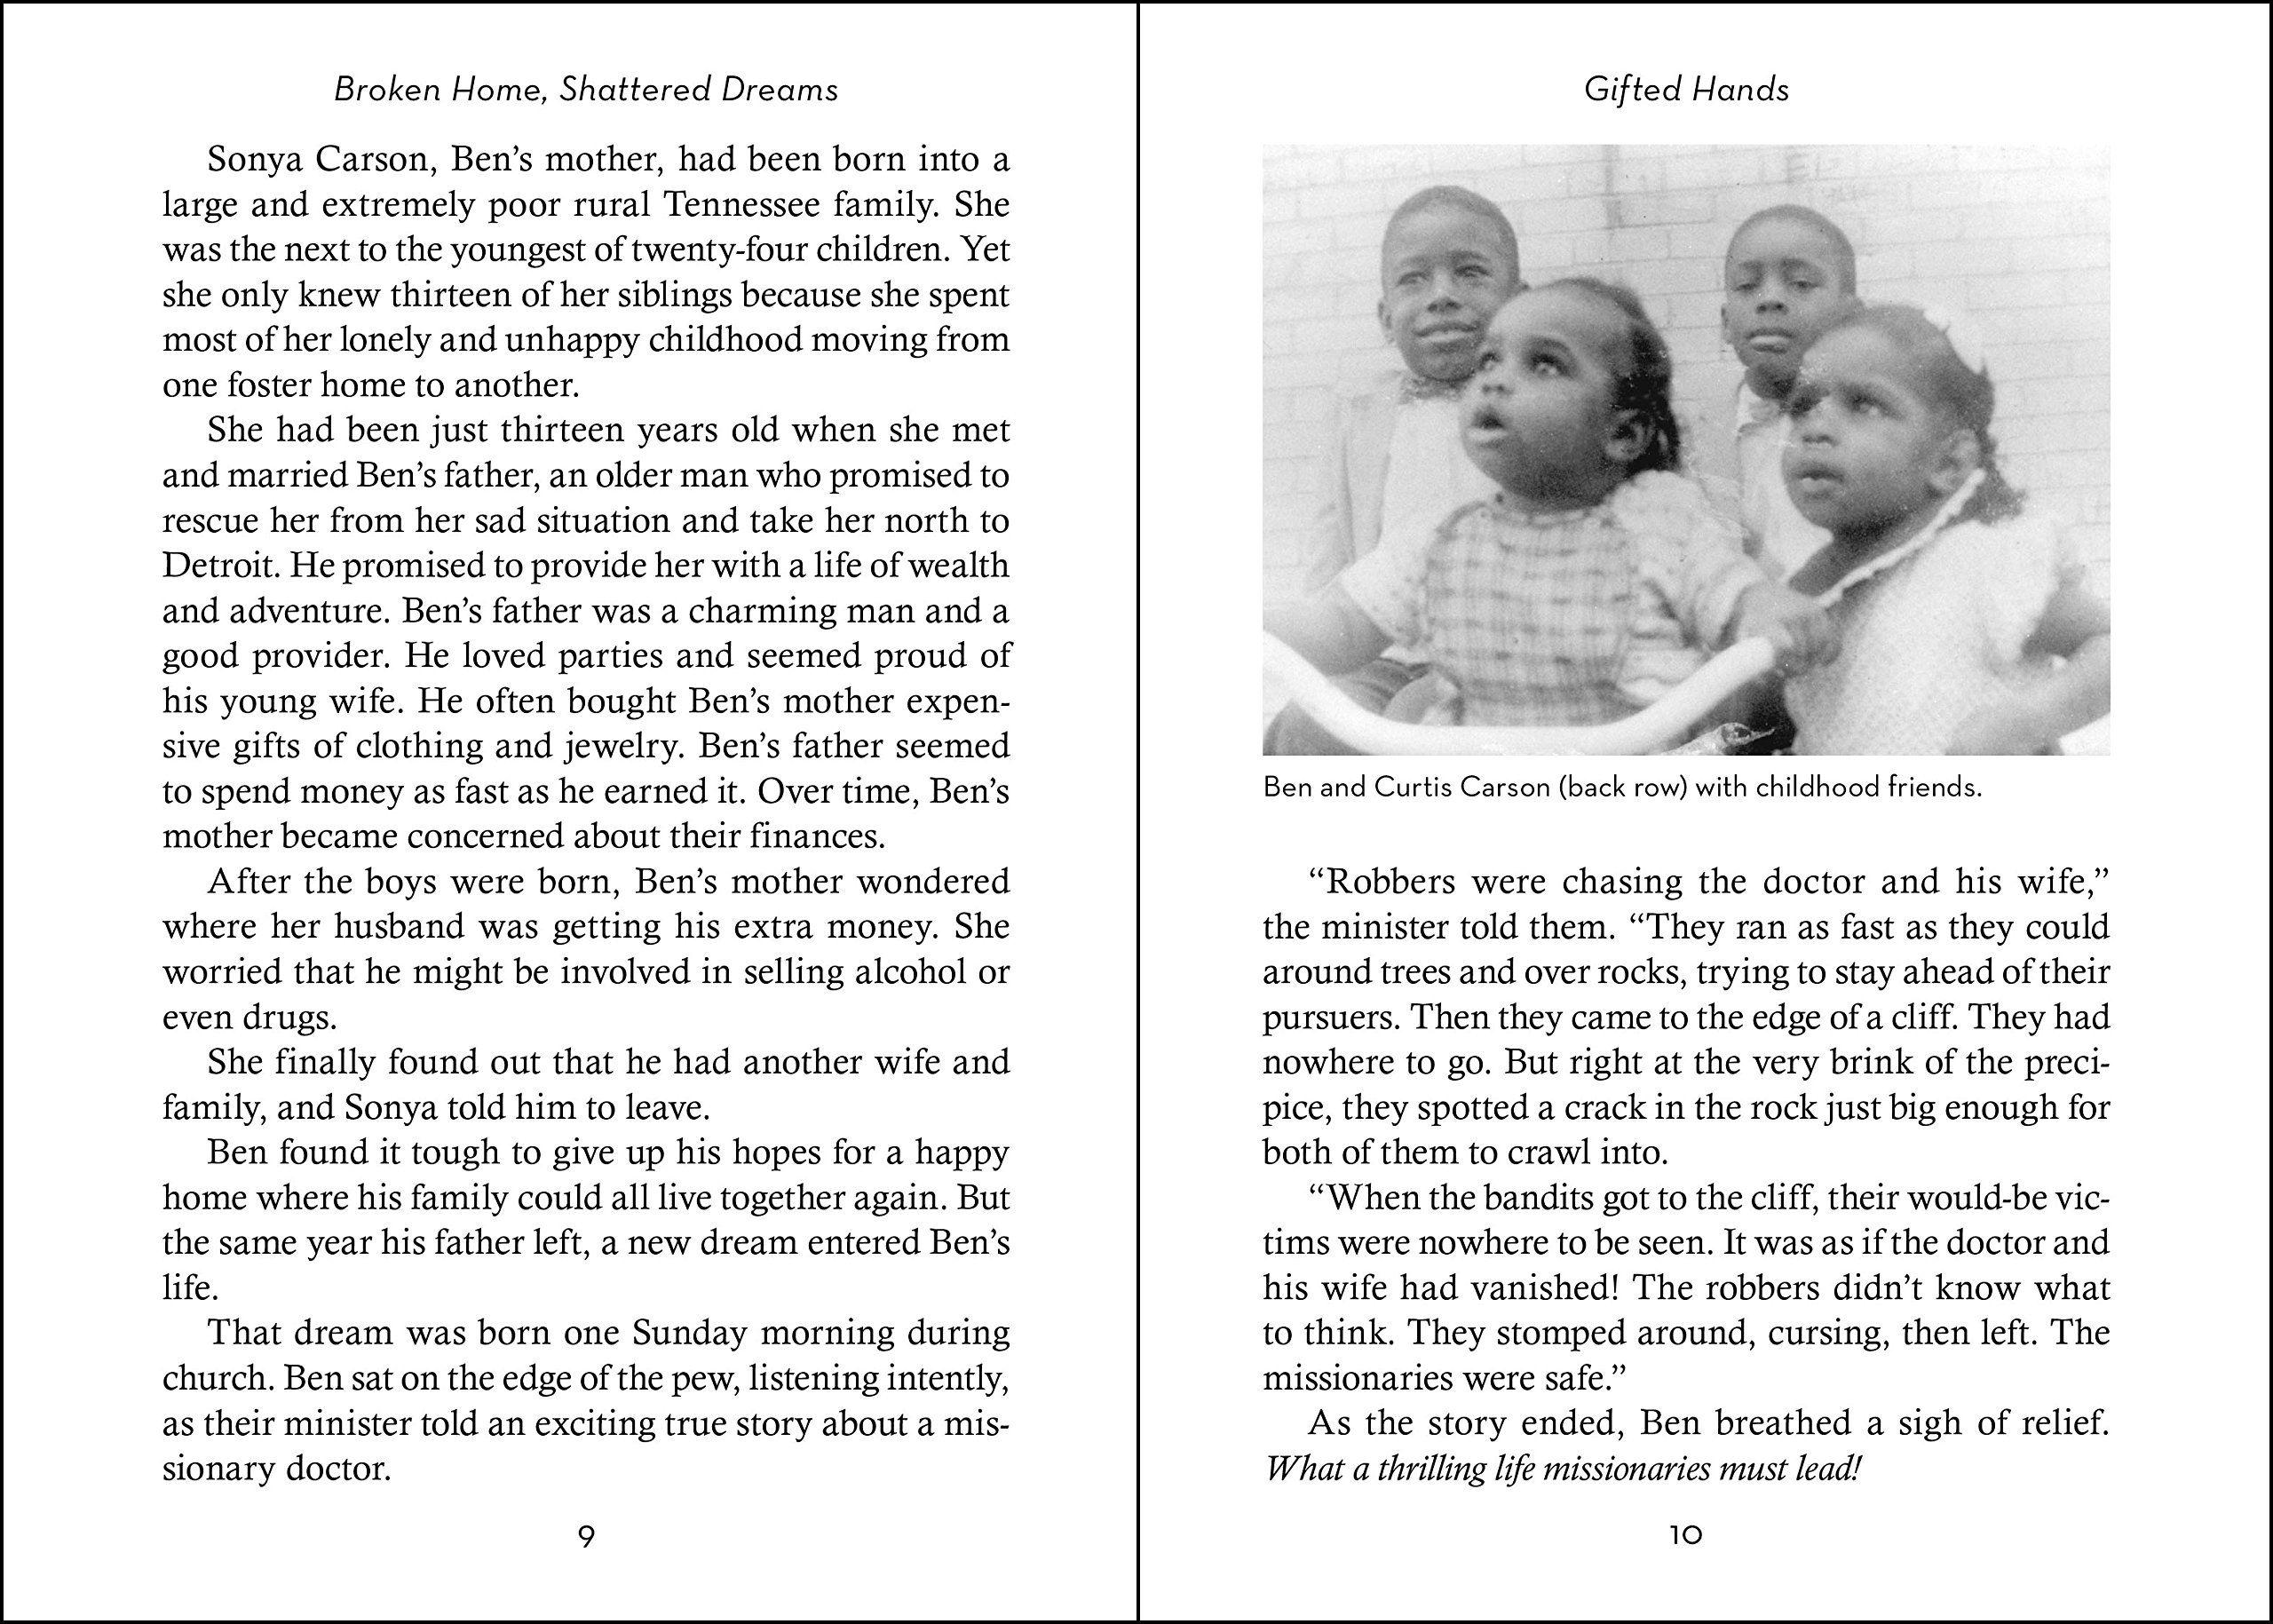 Gifted Hands Revised Kids Edition The Ben Carson Story Zonderkidz